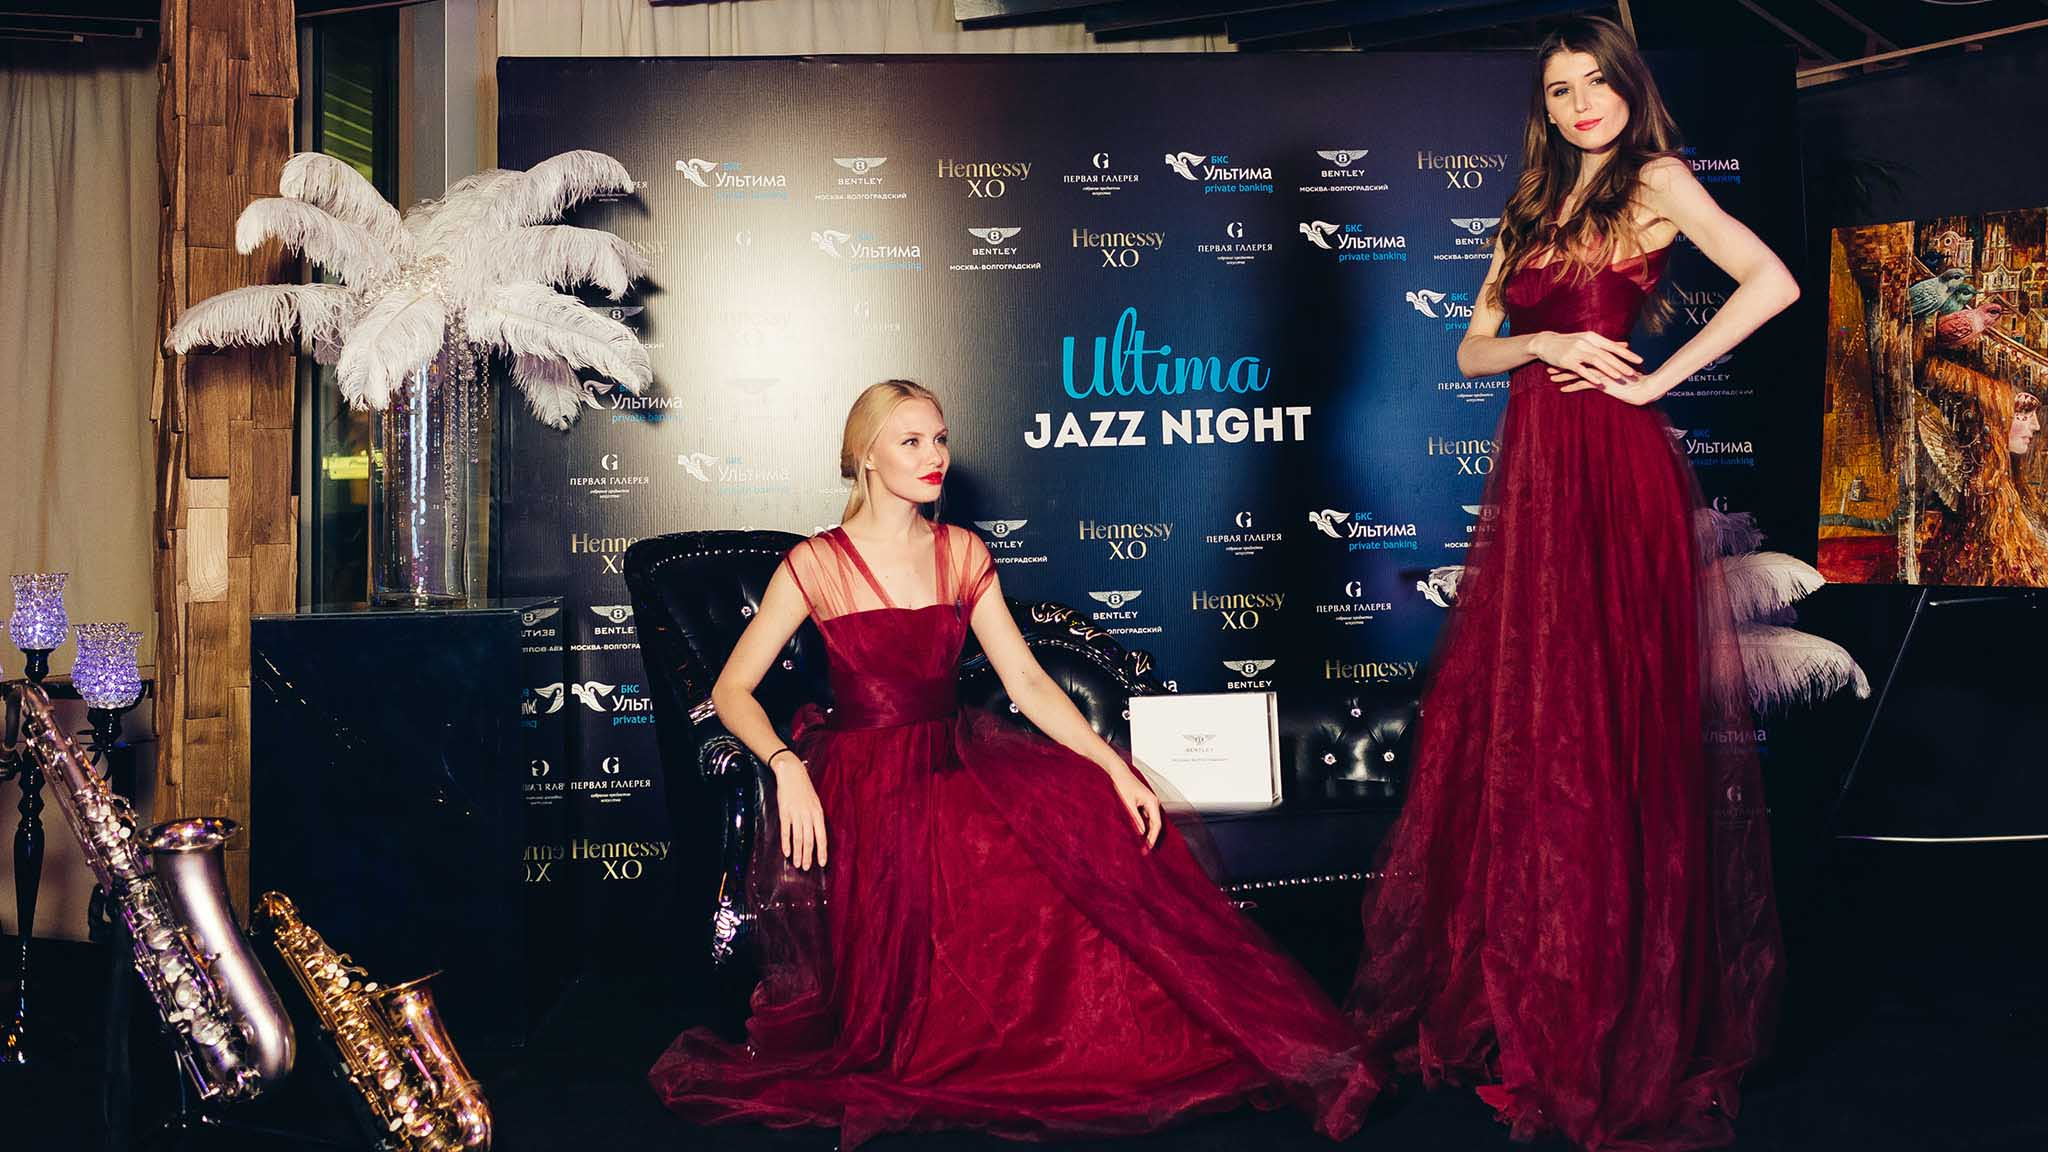 28 сентября 2017, Ultima Jazz Night 2017